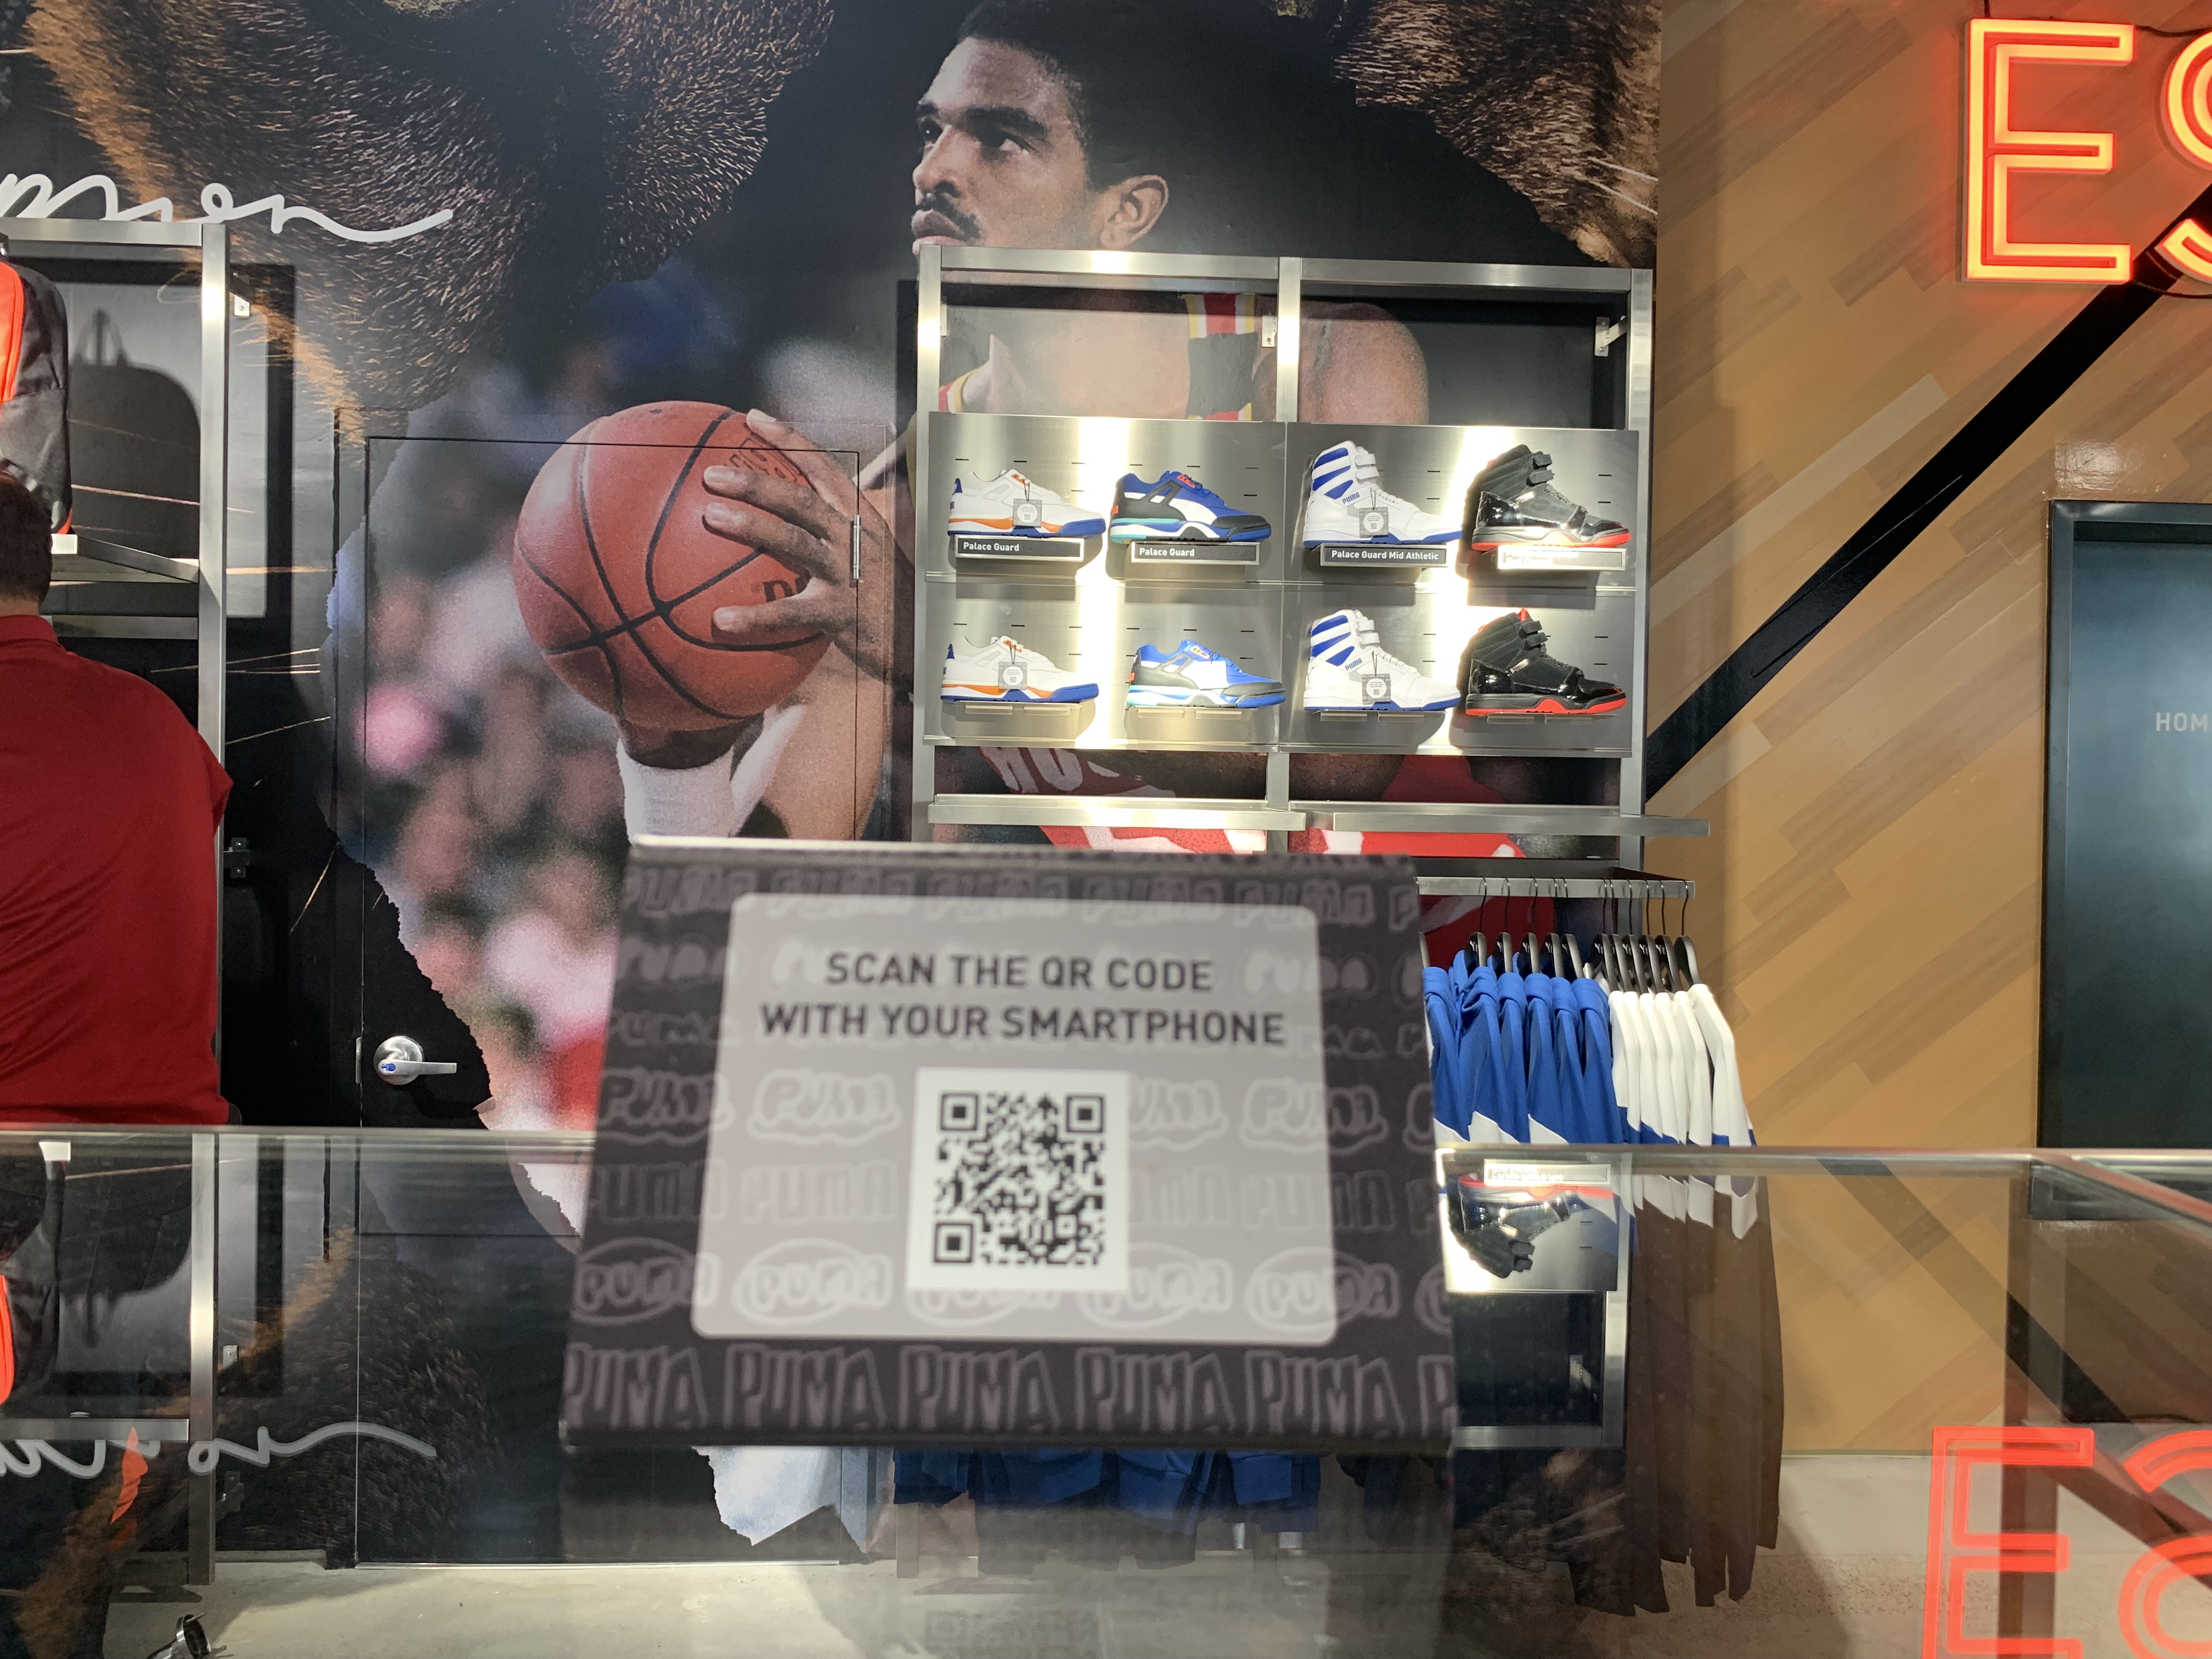 PUMA Leads with Digitally Interactive Products for